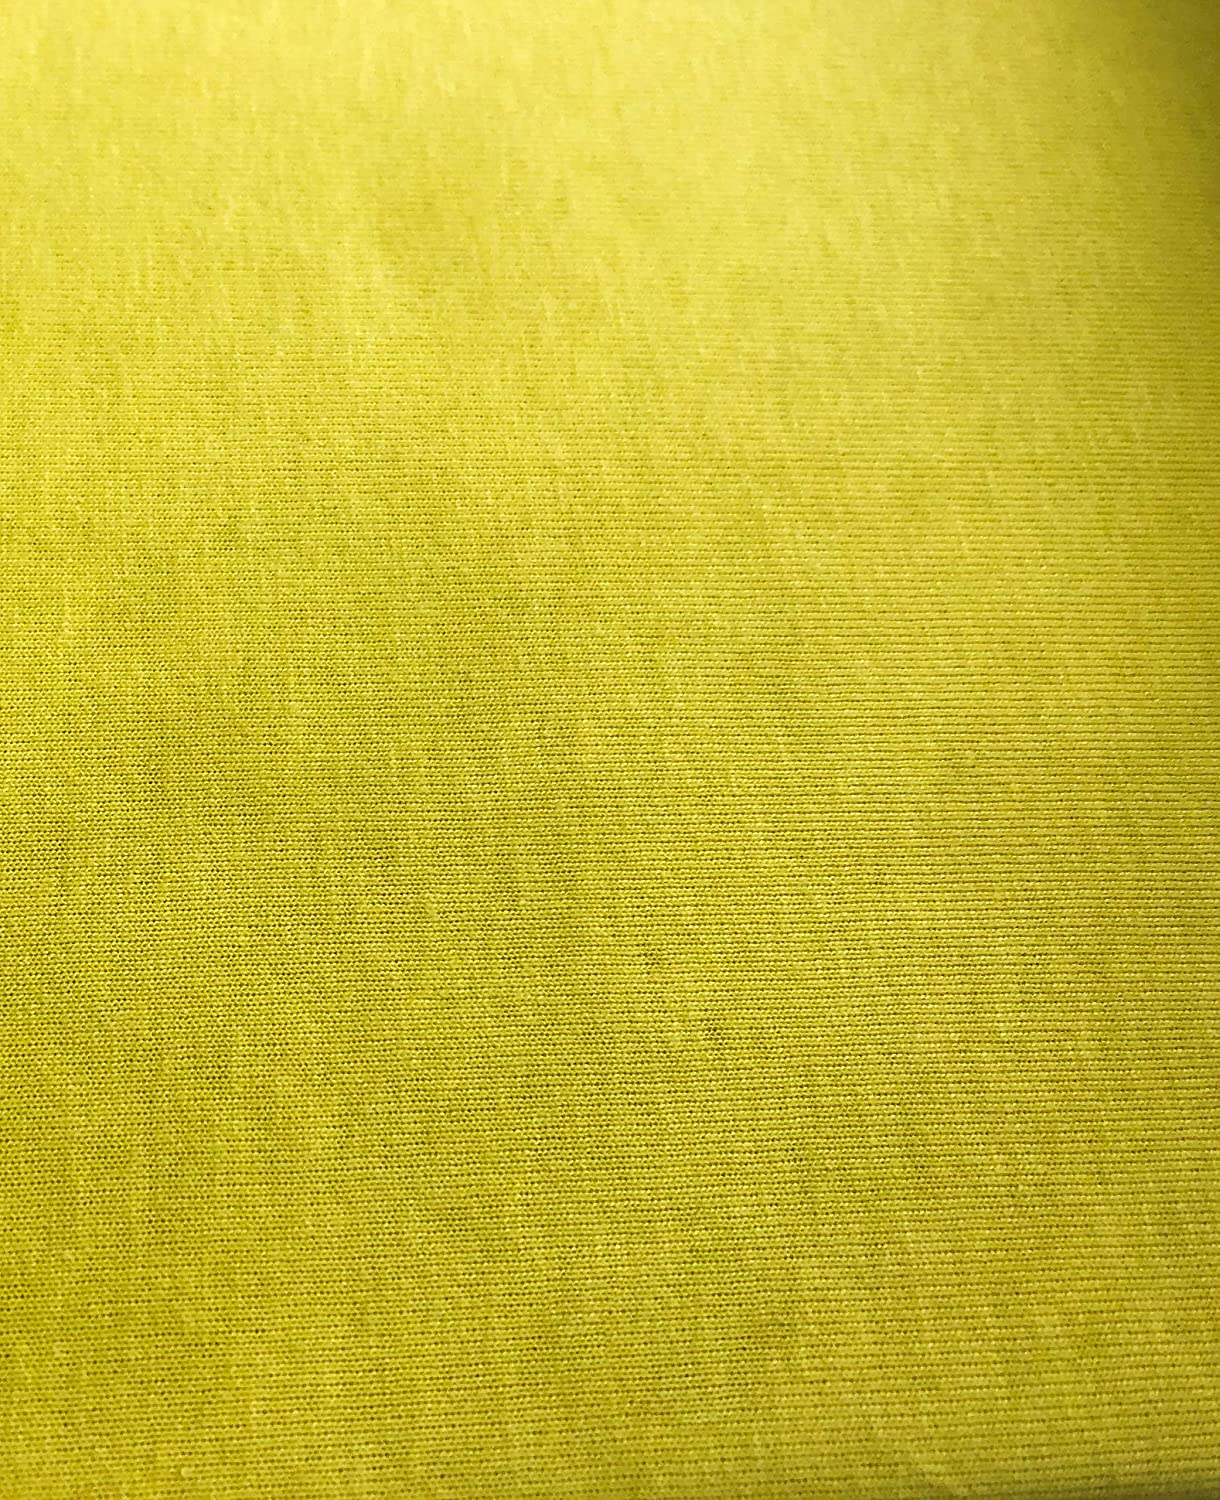 Cotton Jersey Cot Bed Fitted Sheets,100/% Cotton 70 x 140 cm Yellow